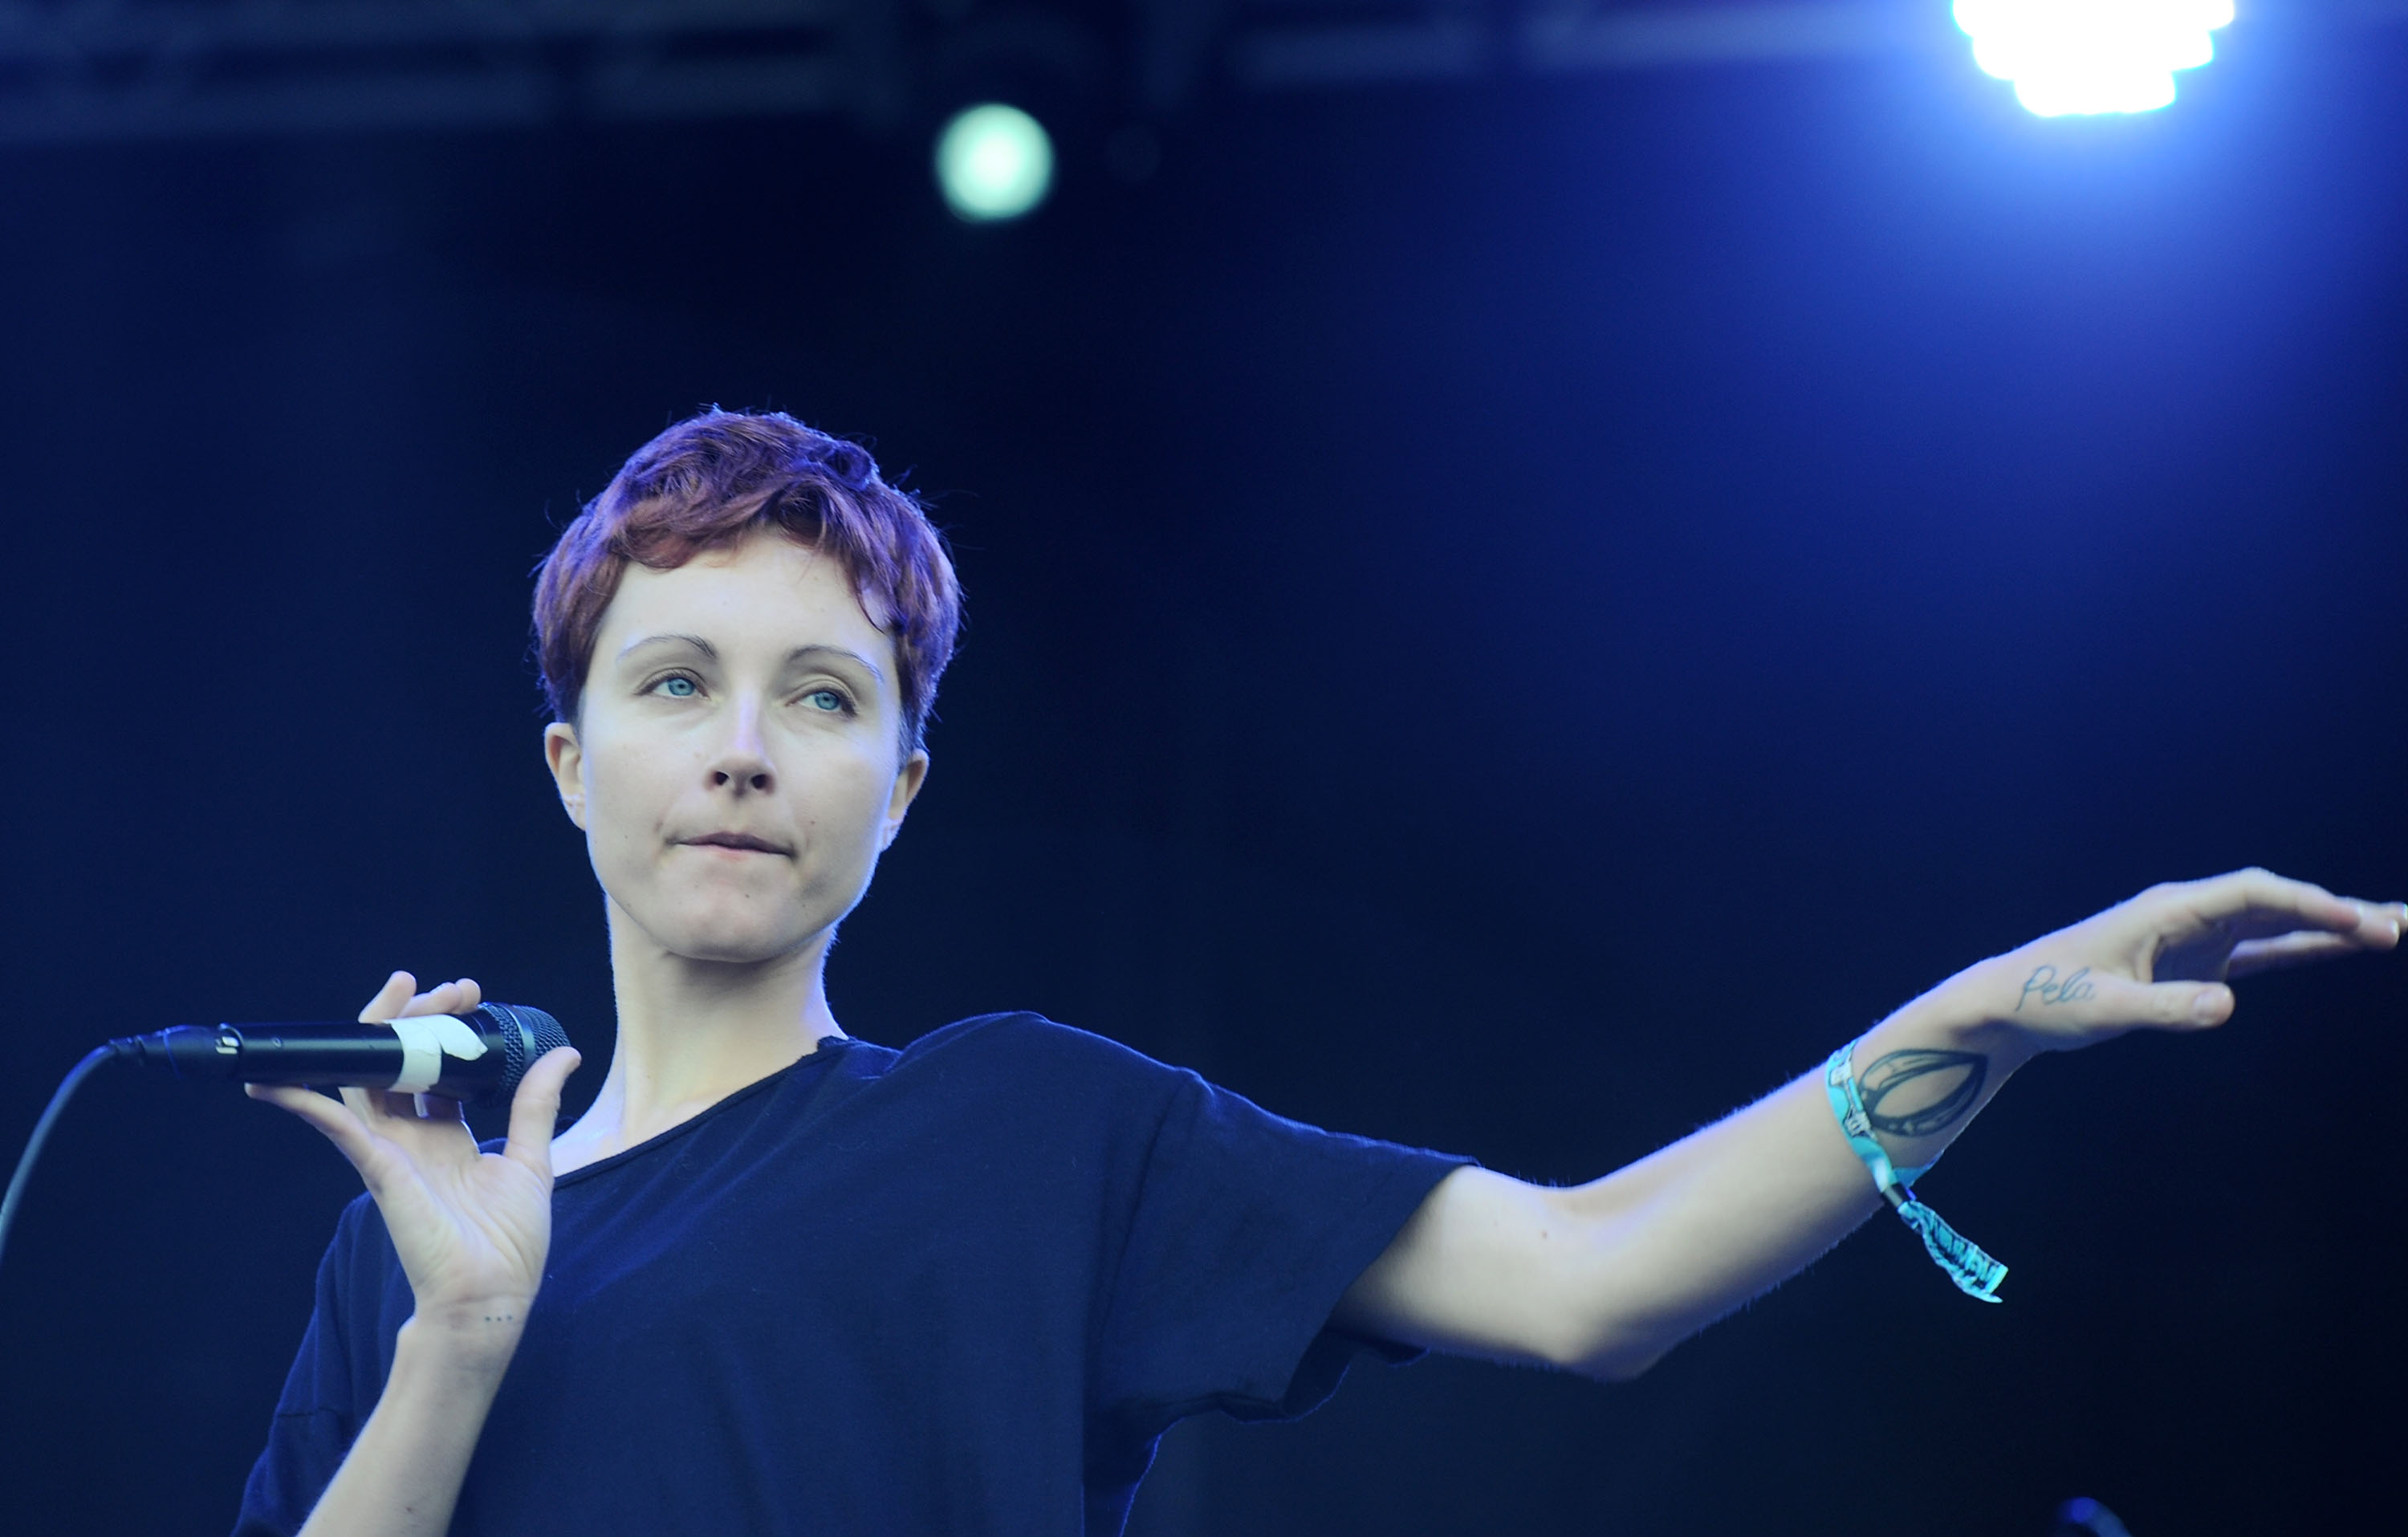 NEW YORK, NY - JUNE 07:  Channy Leaneagh of the band Polica performs during 2013 Governors Ball Music Festival at Randall's I